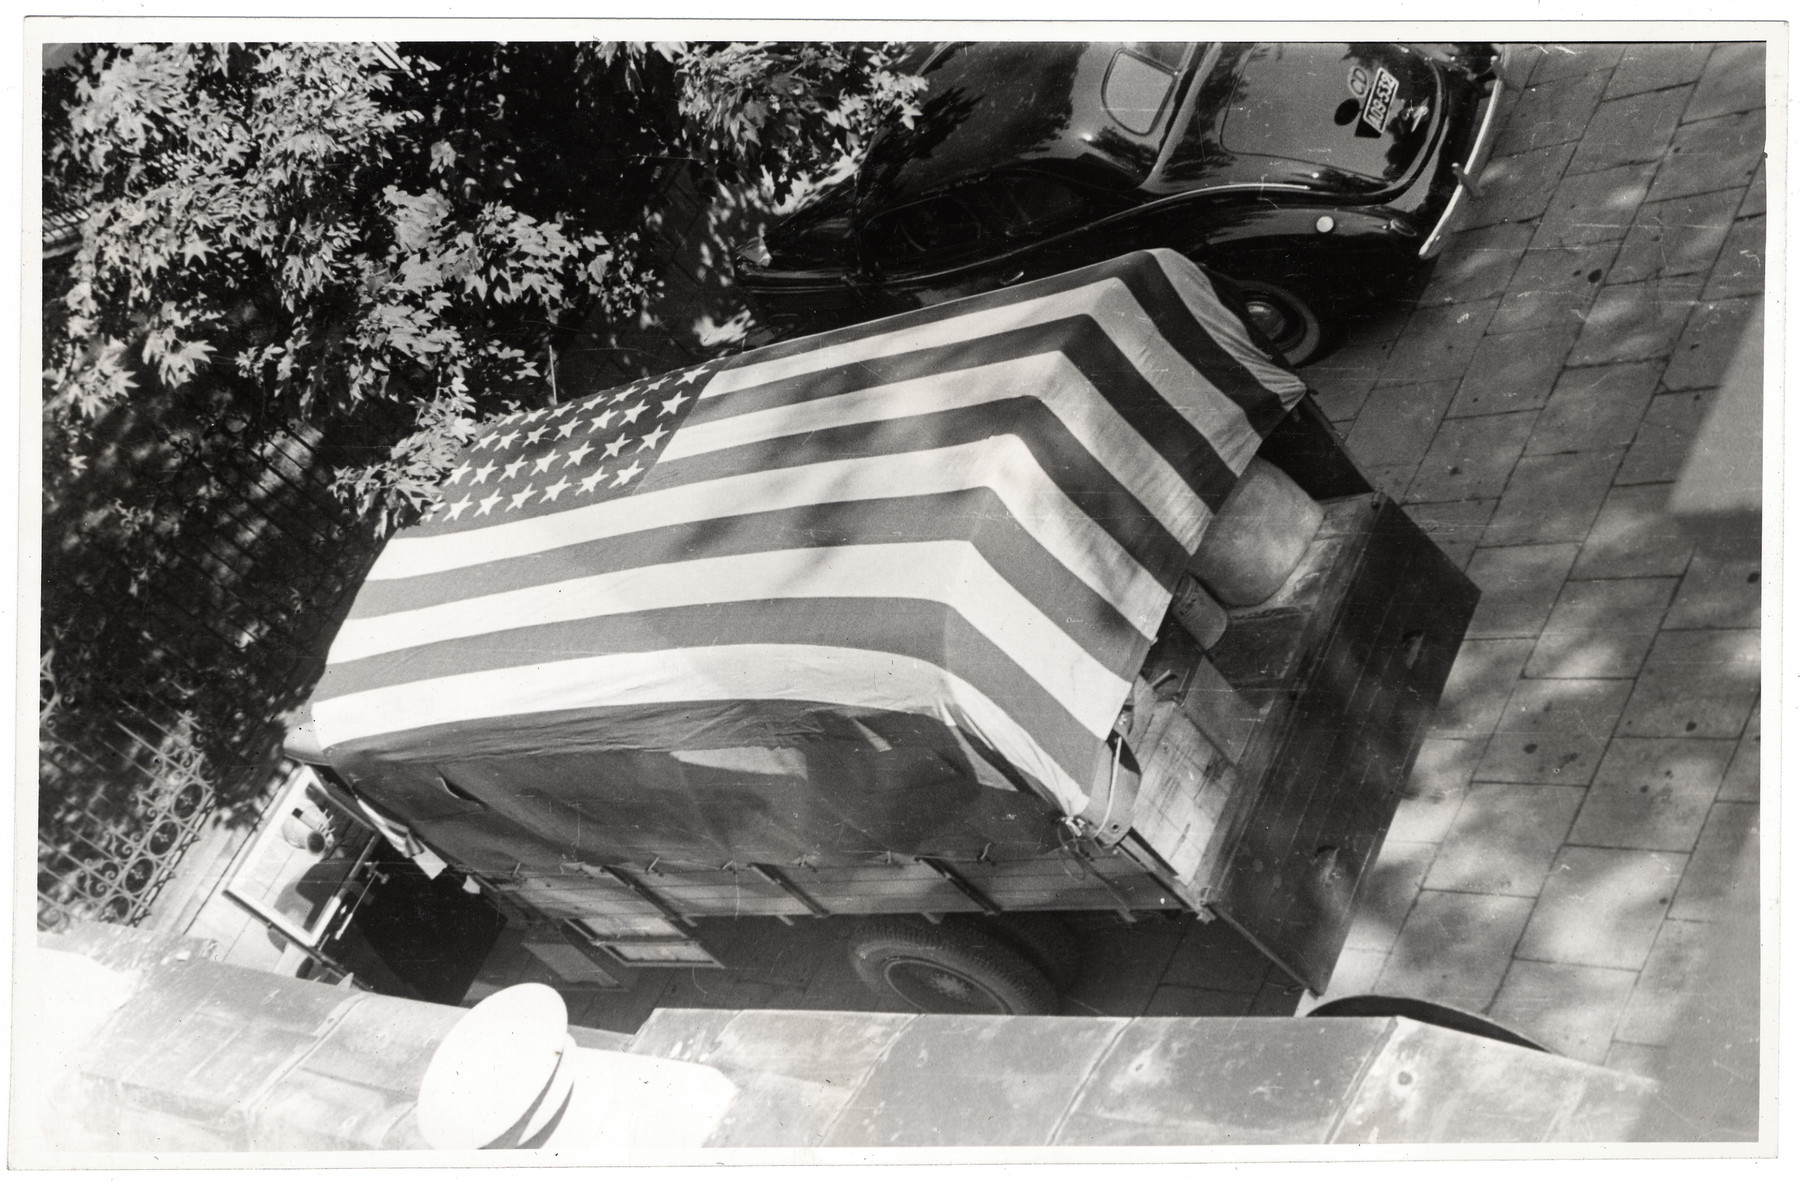 Aerial view of a truck filled with supplies and covered by an American flag in besieged Warsaw.